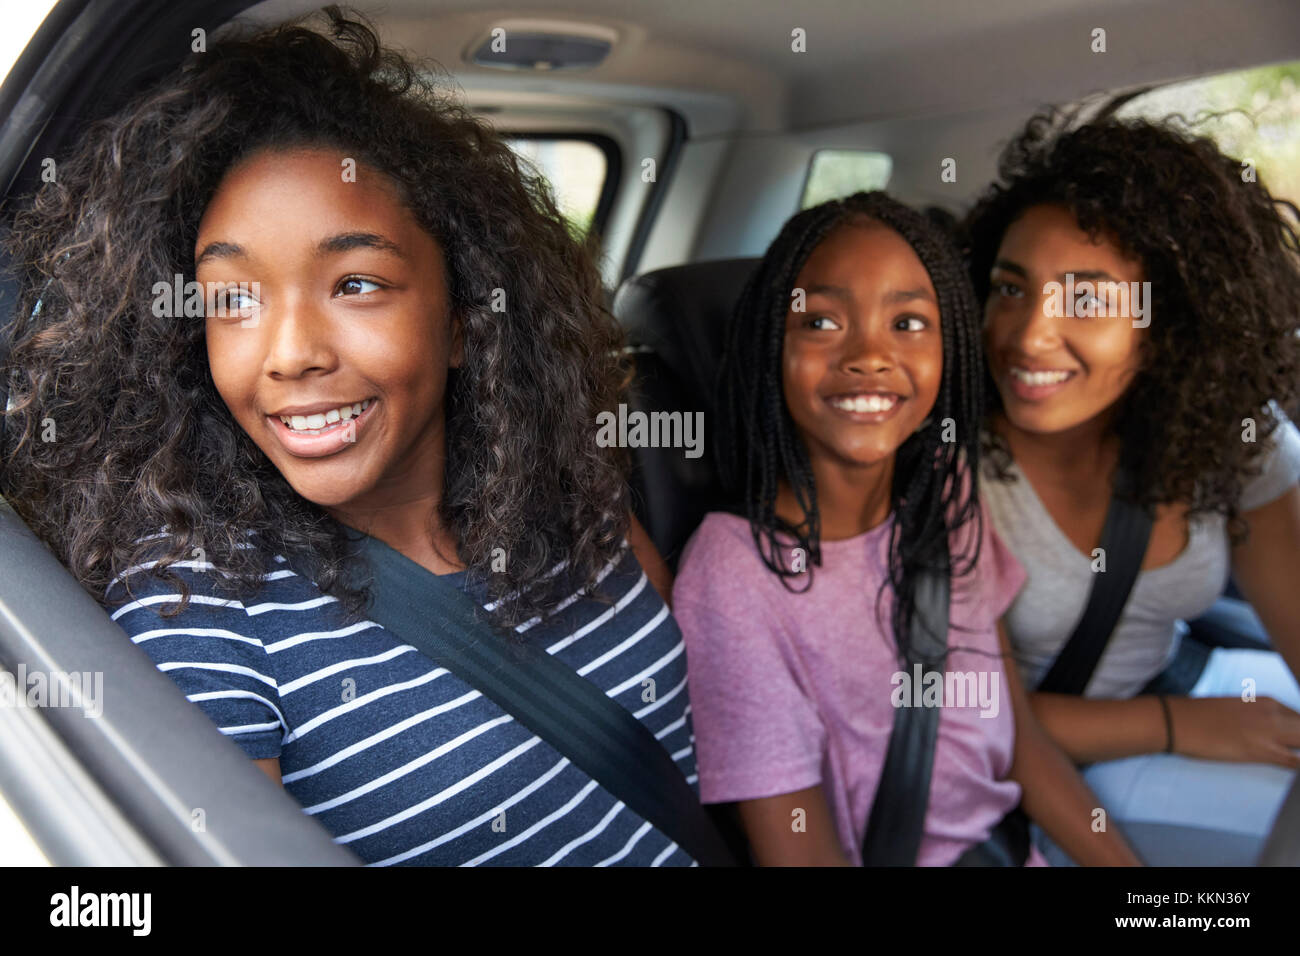 Family With Teenage Children In Car On Road Trip - Stock Image